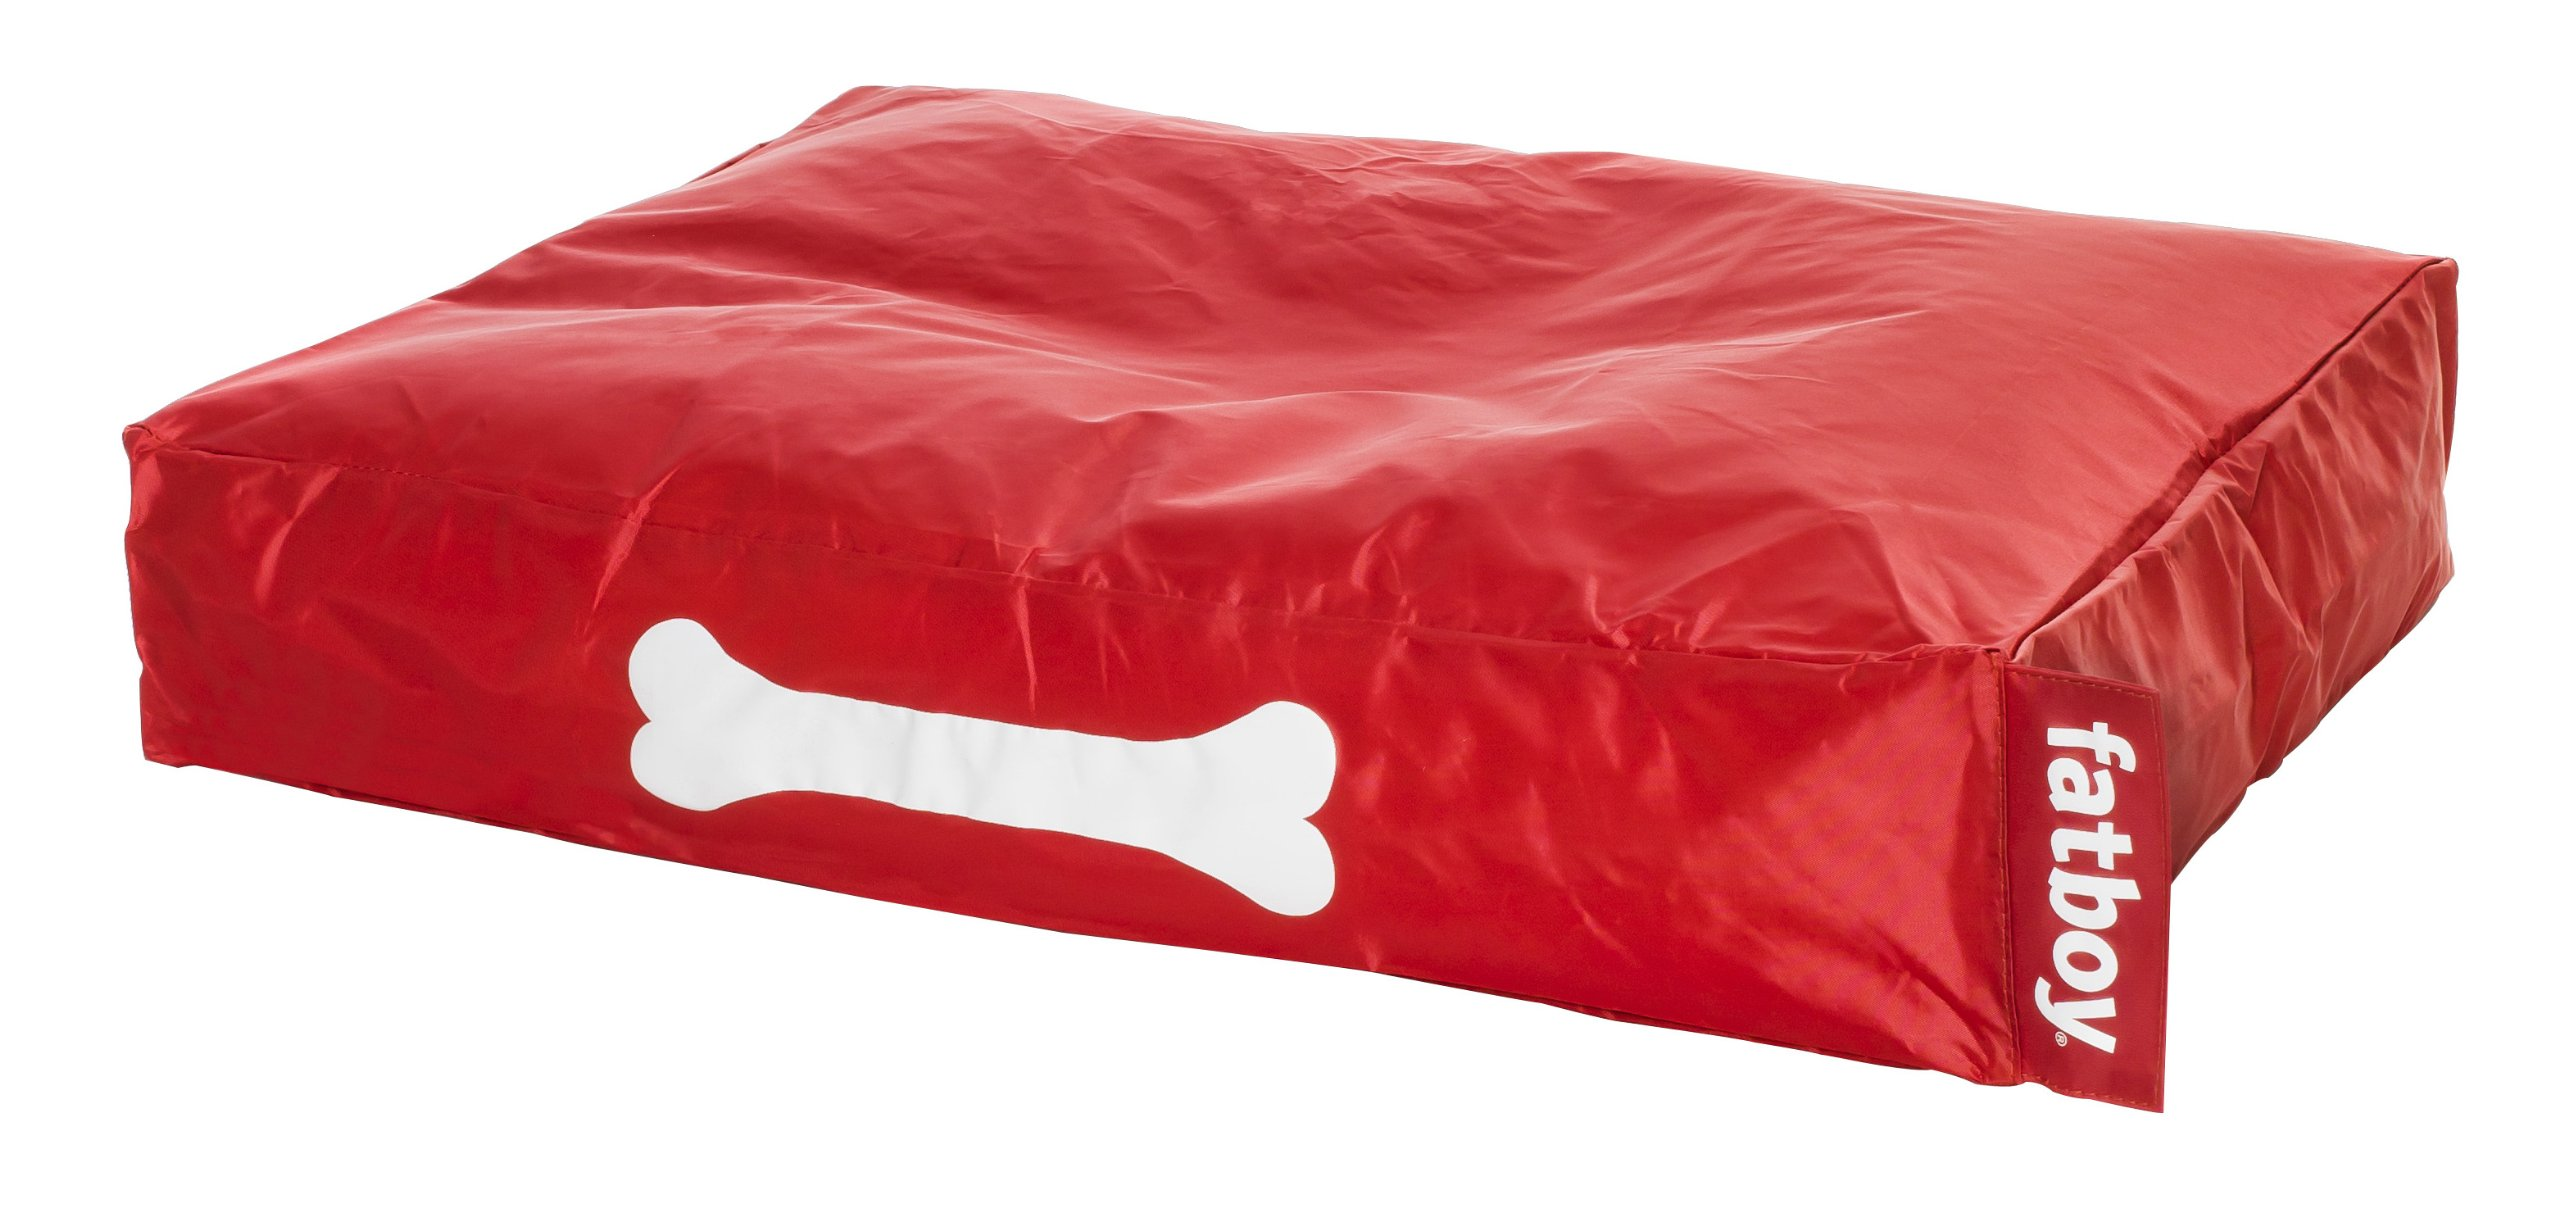 Fatboy Doggielounge, small dog bed - red by Fatboy (Image #1)